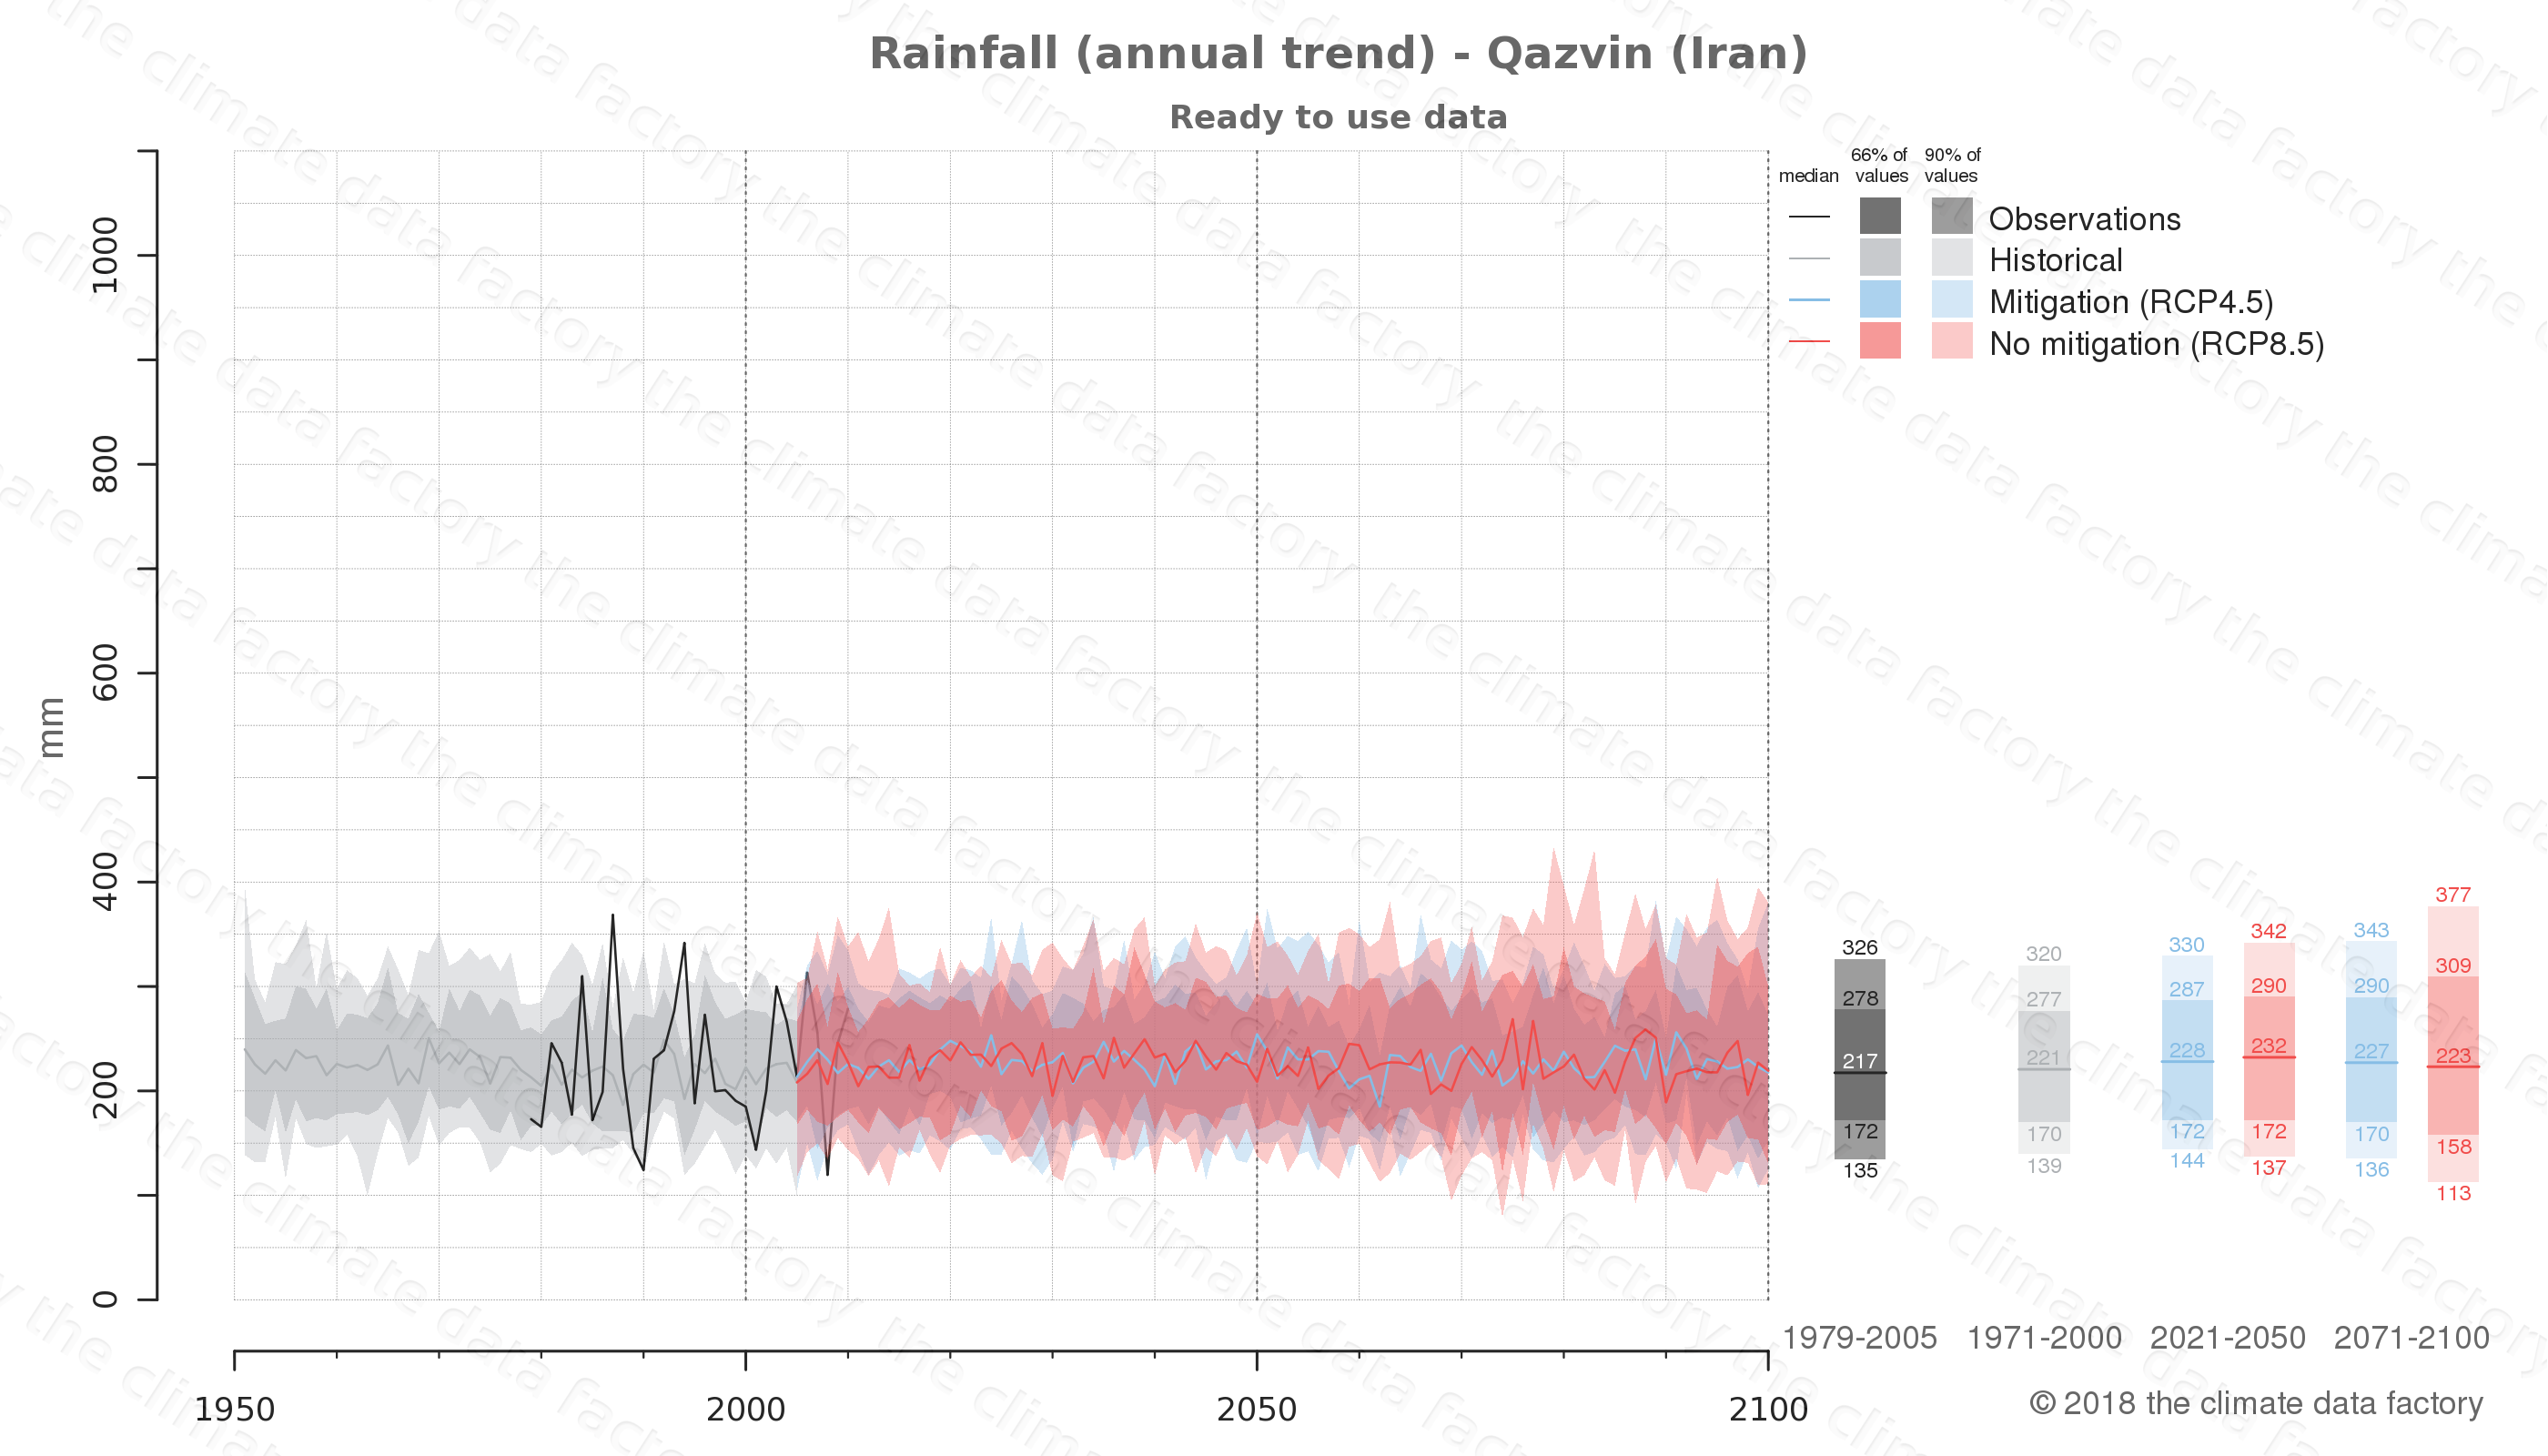 climate change data policy adaptation climate graph city data rainfall qazvin iran